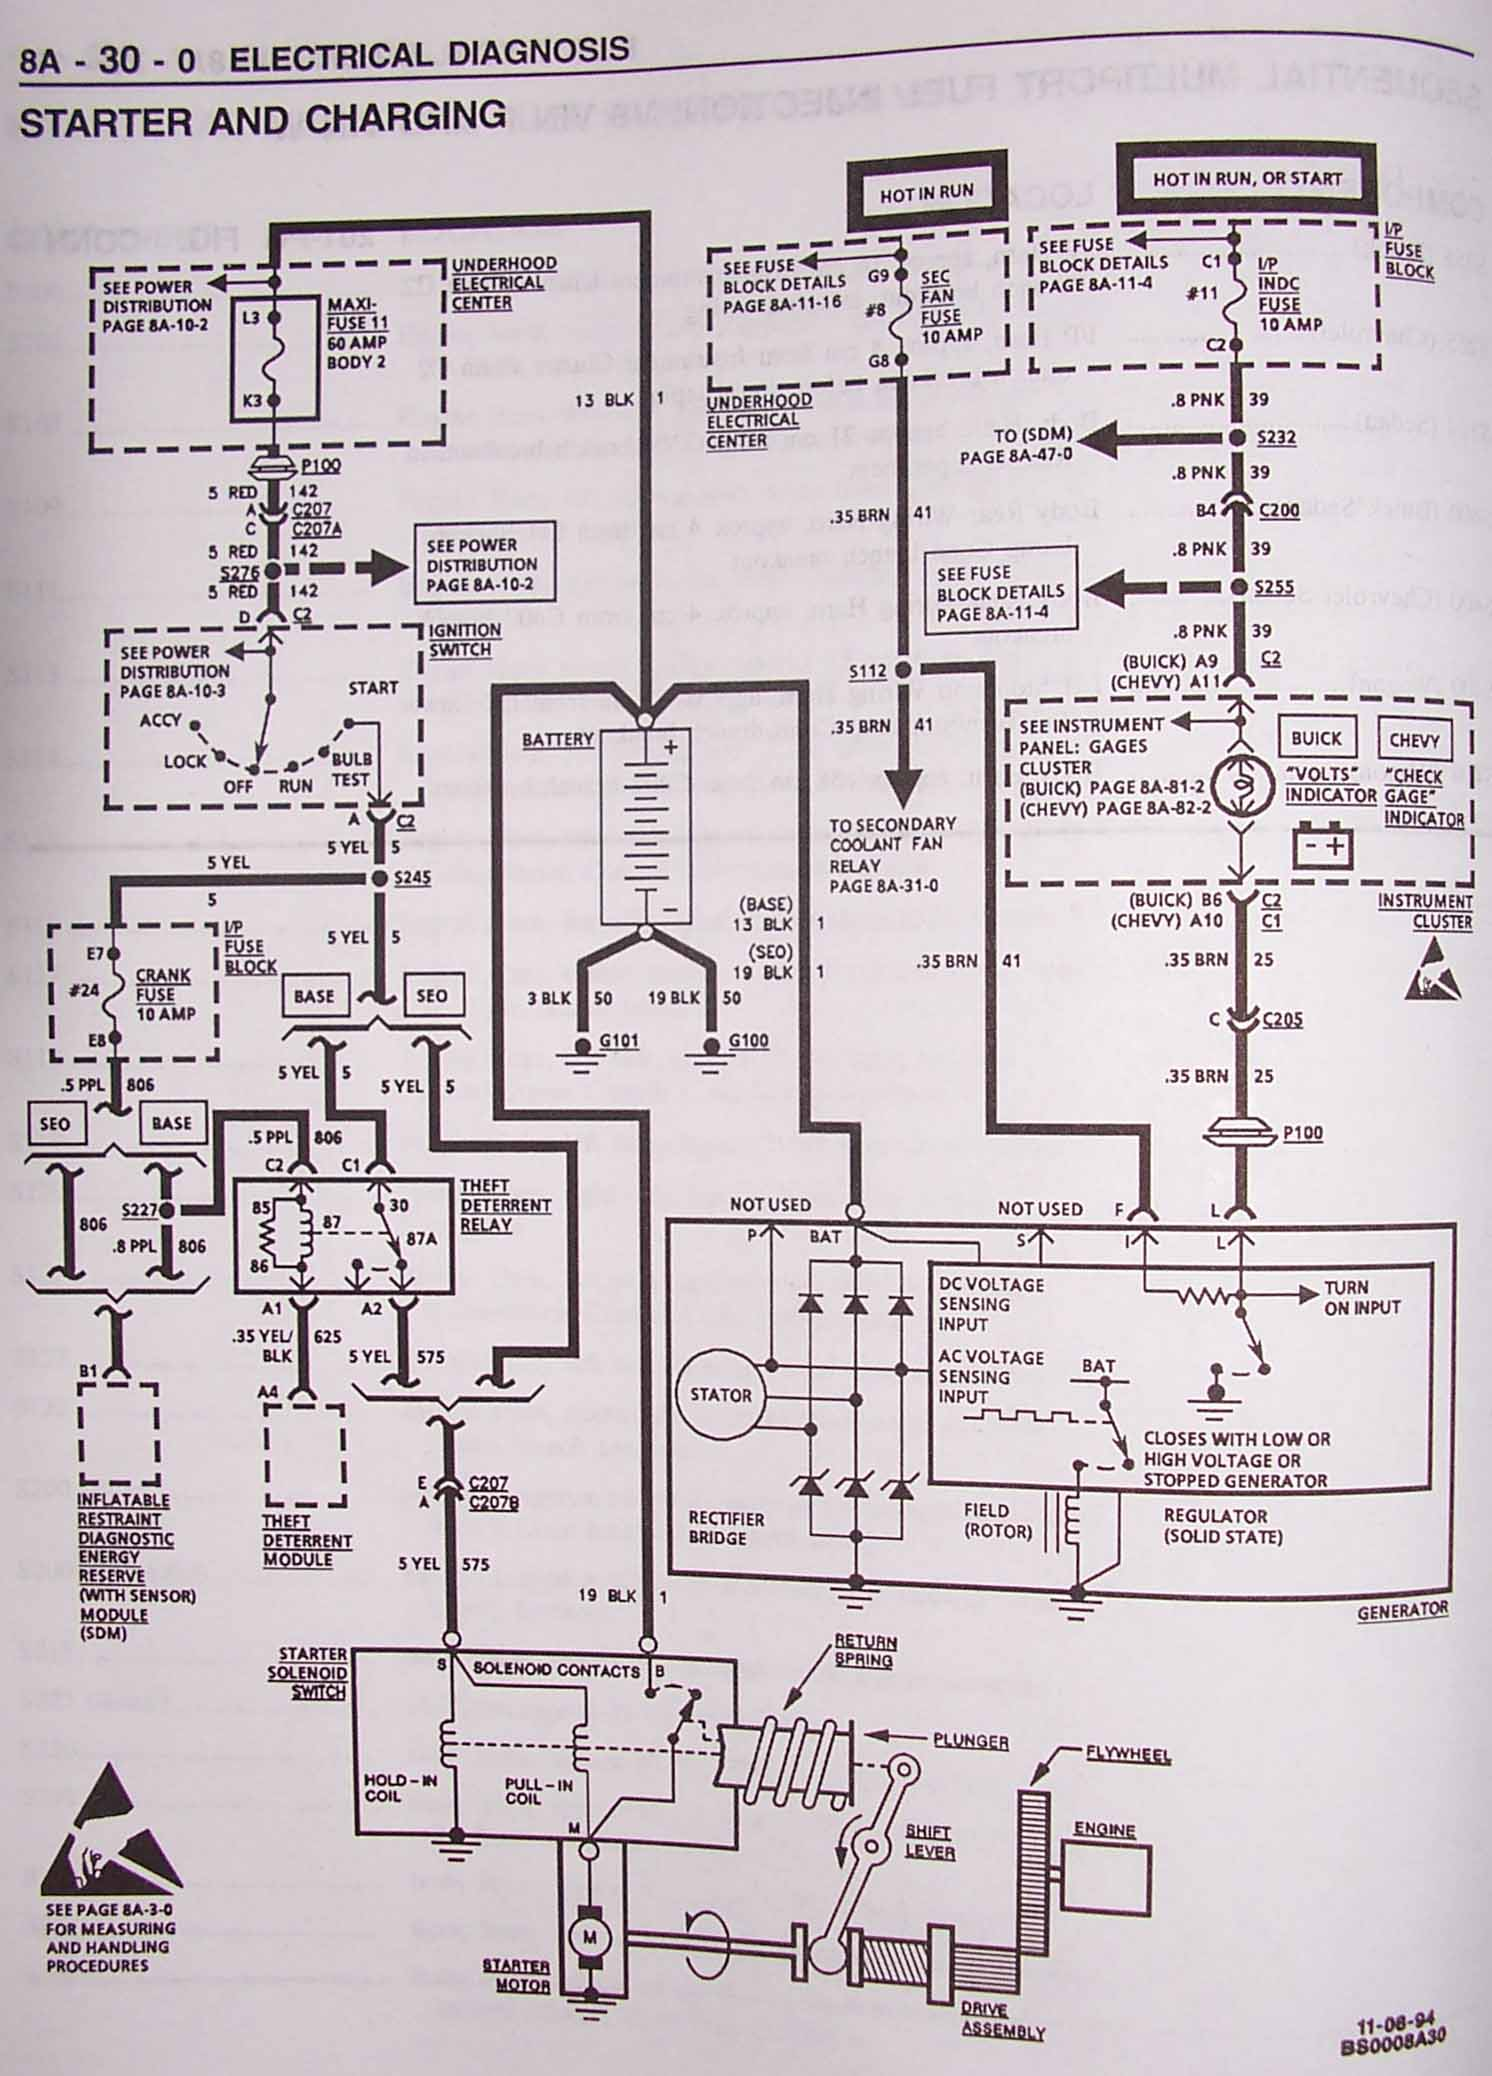 1994 S10 Injector Wiring Diagram Custom 94 Blazer Camaro Harness Example Electrical Rh Huntervalleyhotels Co Chevy Starter